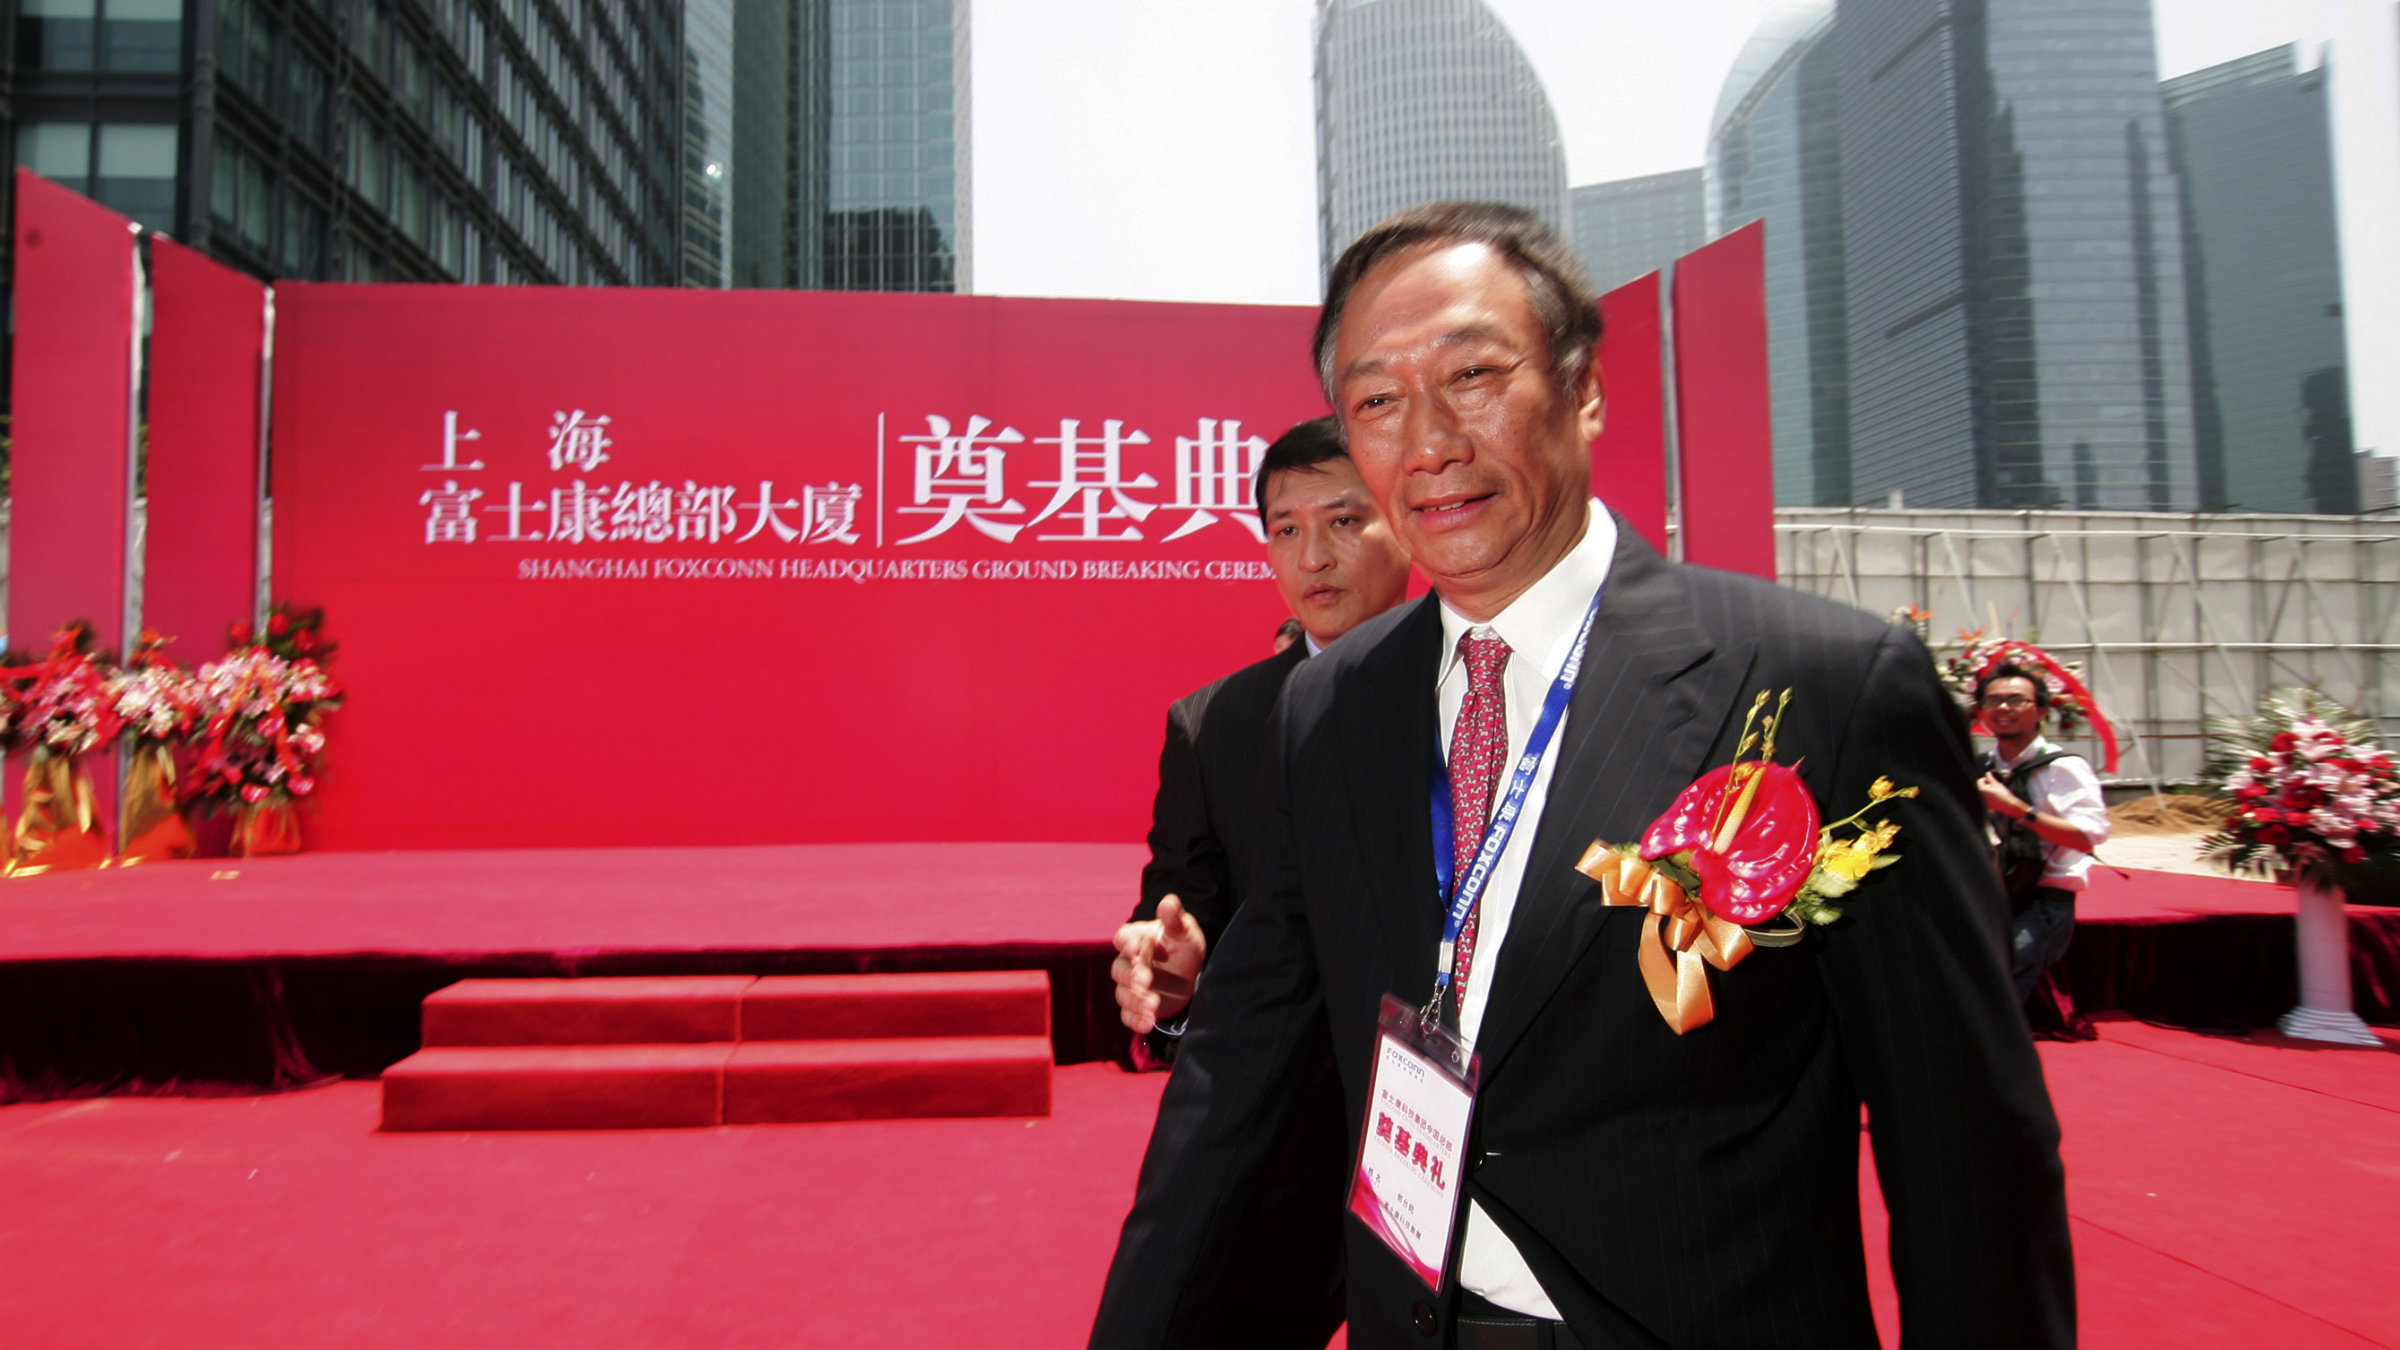 Hon Hai Chairman Terry Gou, hoping that bad things don't come in threes.